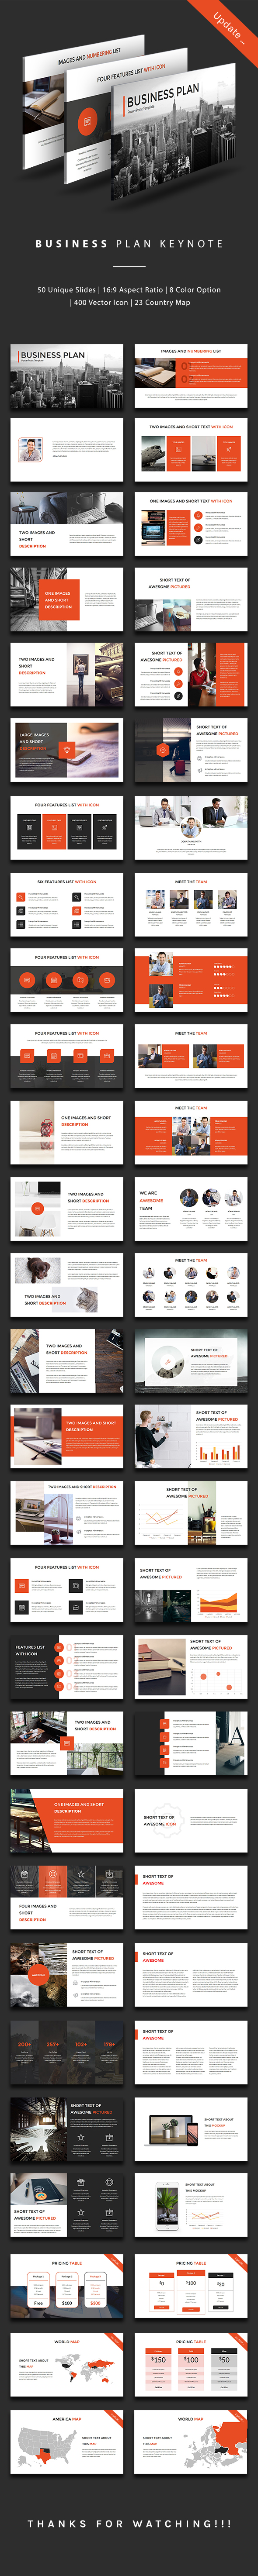 Business Plan Keynote - Business Keynote Templates